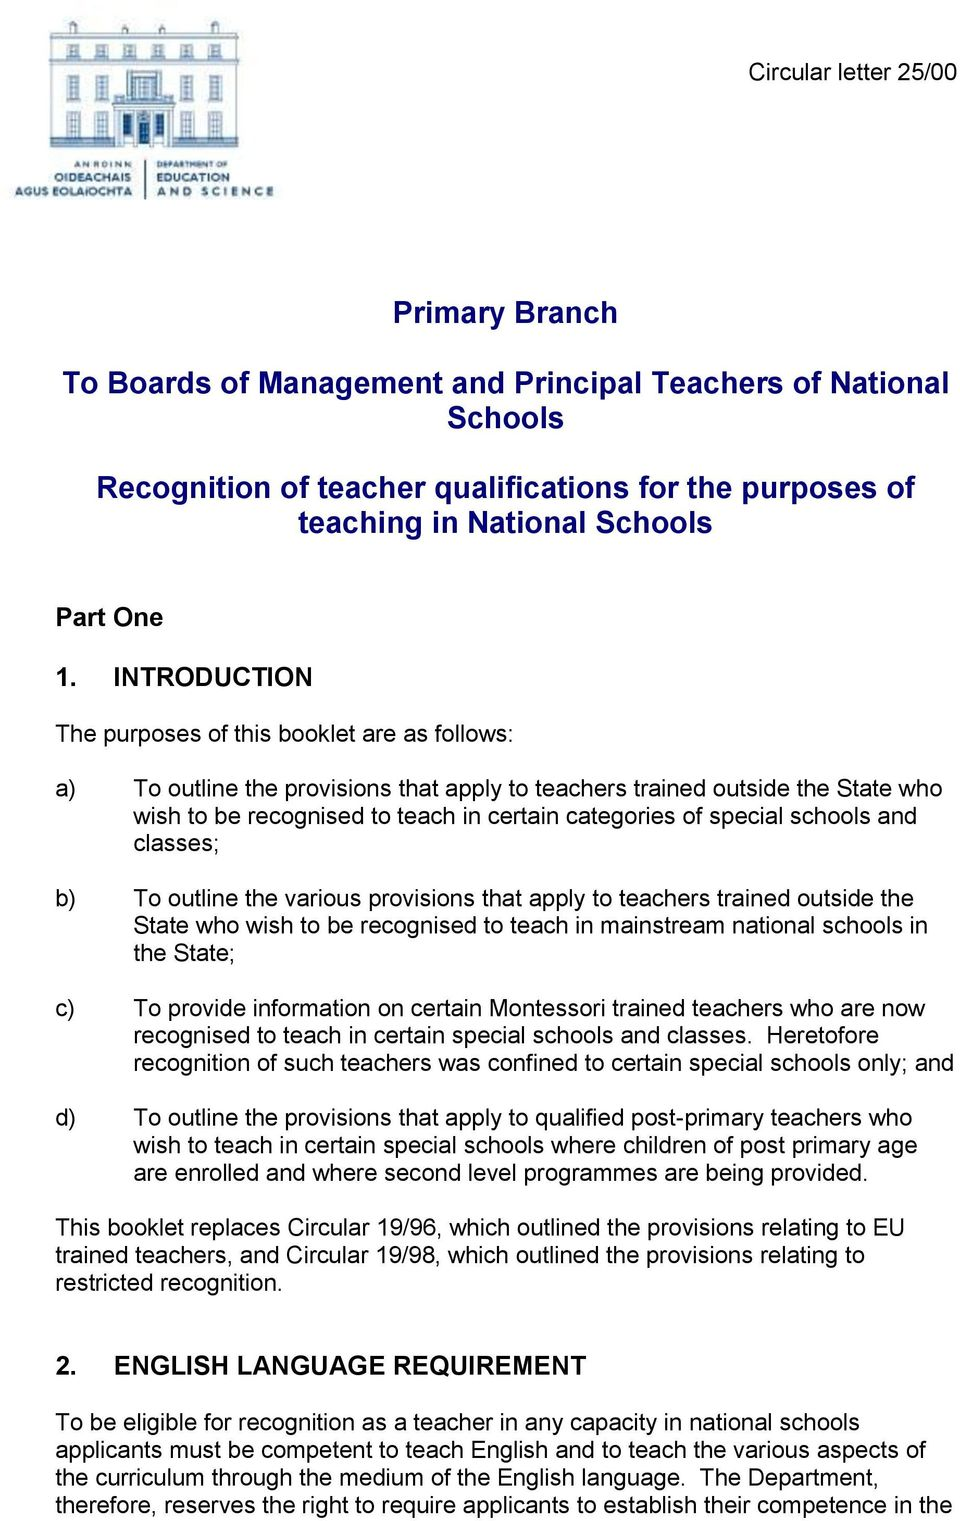 special schools and classes; b) To outline the various provisions that apply to teachers trained outside the State who wish to be recognised to teach in mainstream national schools in the State; c)